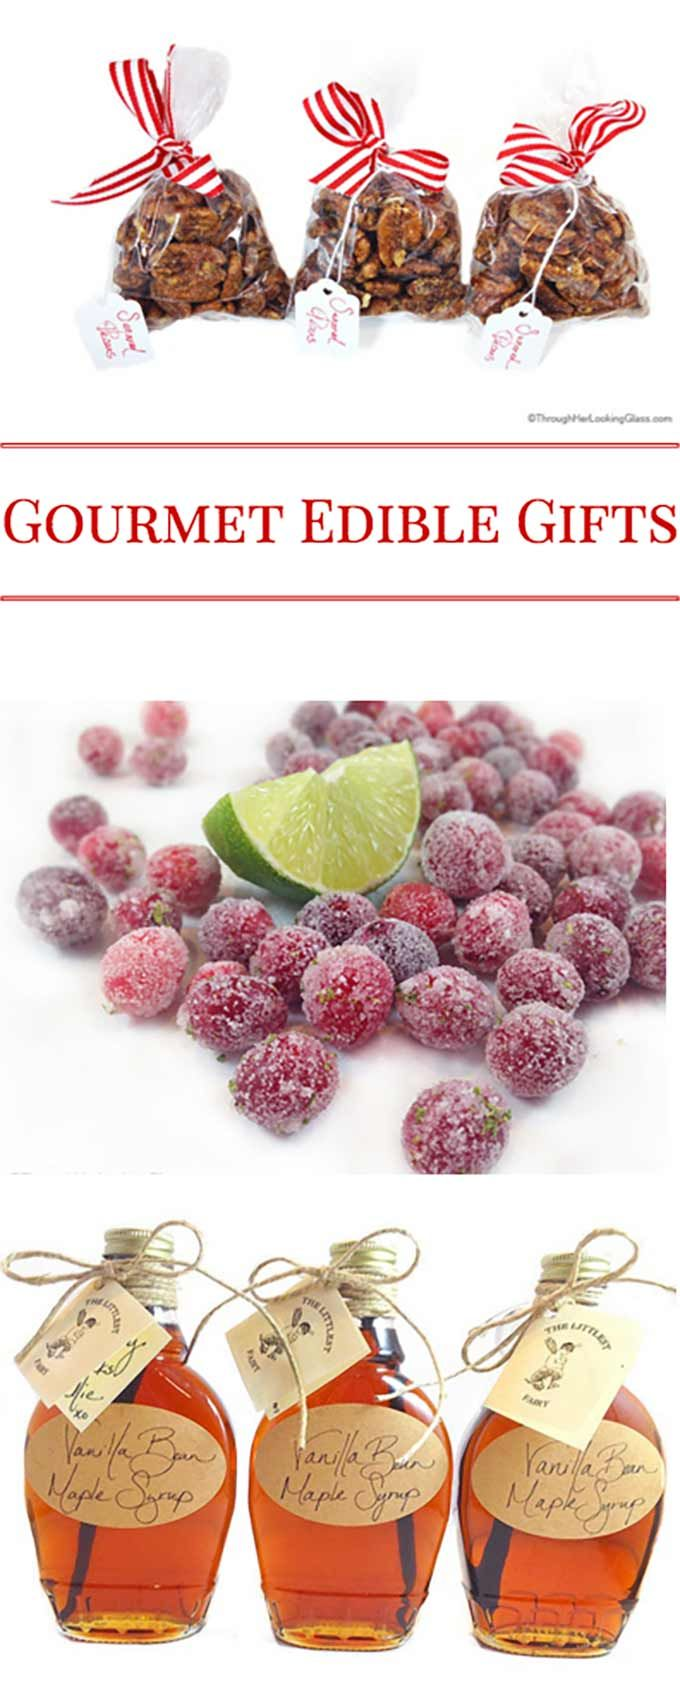 Easy and delicious Gourmet Edible Gifts: Vanilla Bean Maple Syrup, Lime Sugared Cranberries and Sugared Pecans. Perfect for gift baskets!